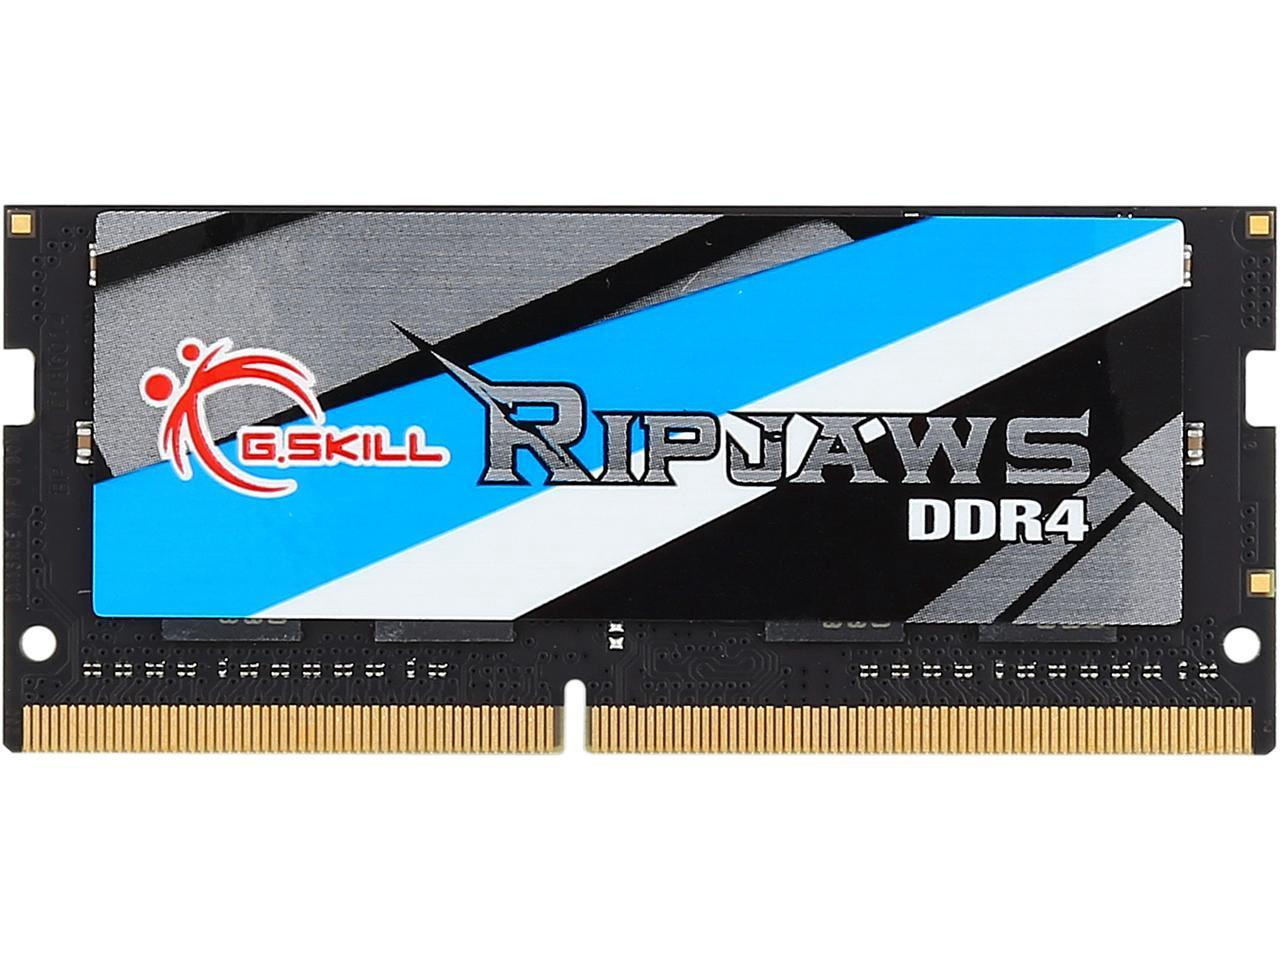 G.Skill Ripjaws Series 8GB (1 x 8GB) DDR4 SODIMM 2400 PC19200 Memory Laptop - Biru